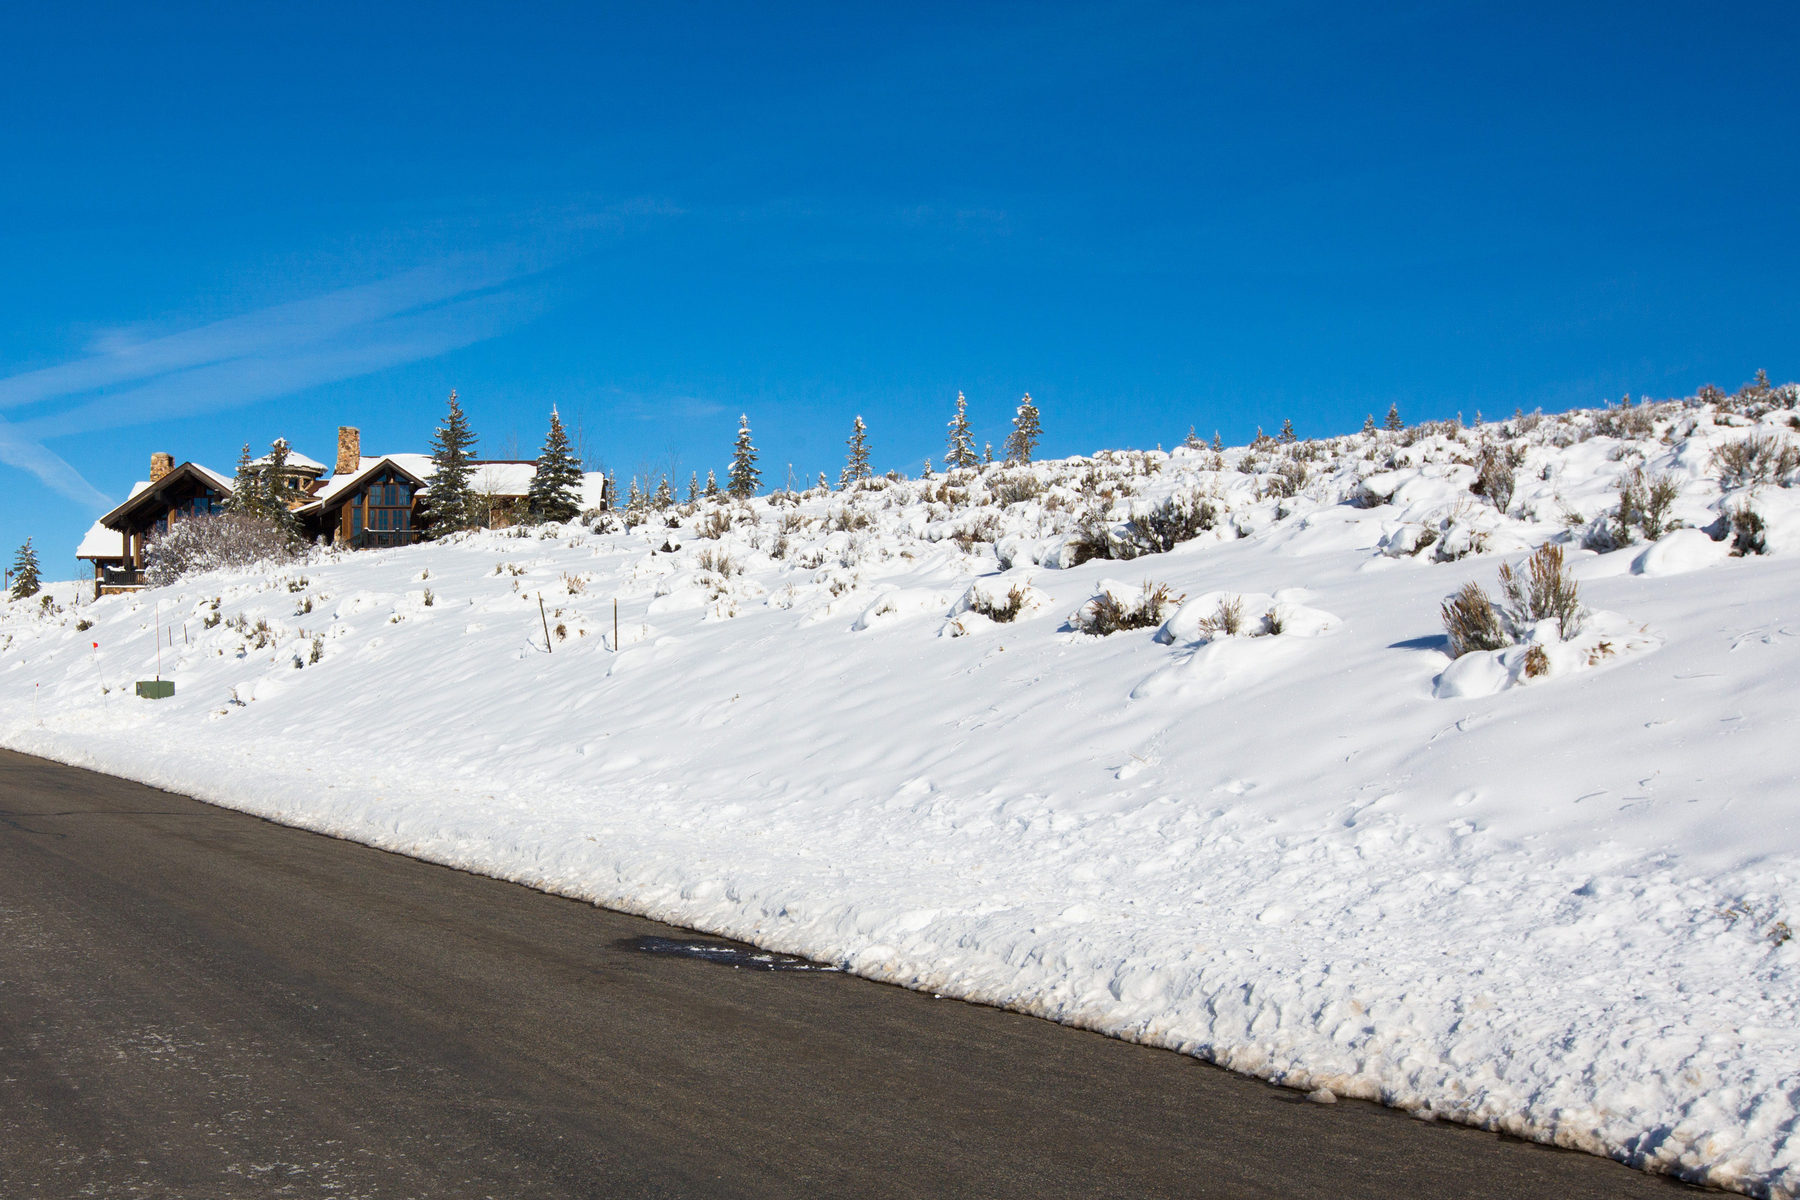 Terreno per Vendita alle ore Spectacular home site in Deer Crest Estates 2923 West Jordanelle View Park City, Utah 84060 Stati Uniti